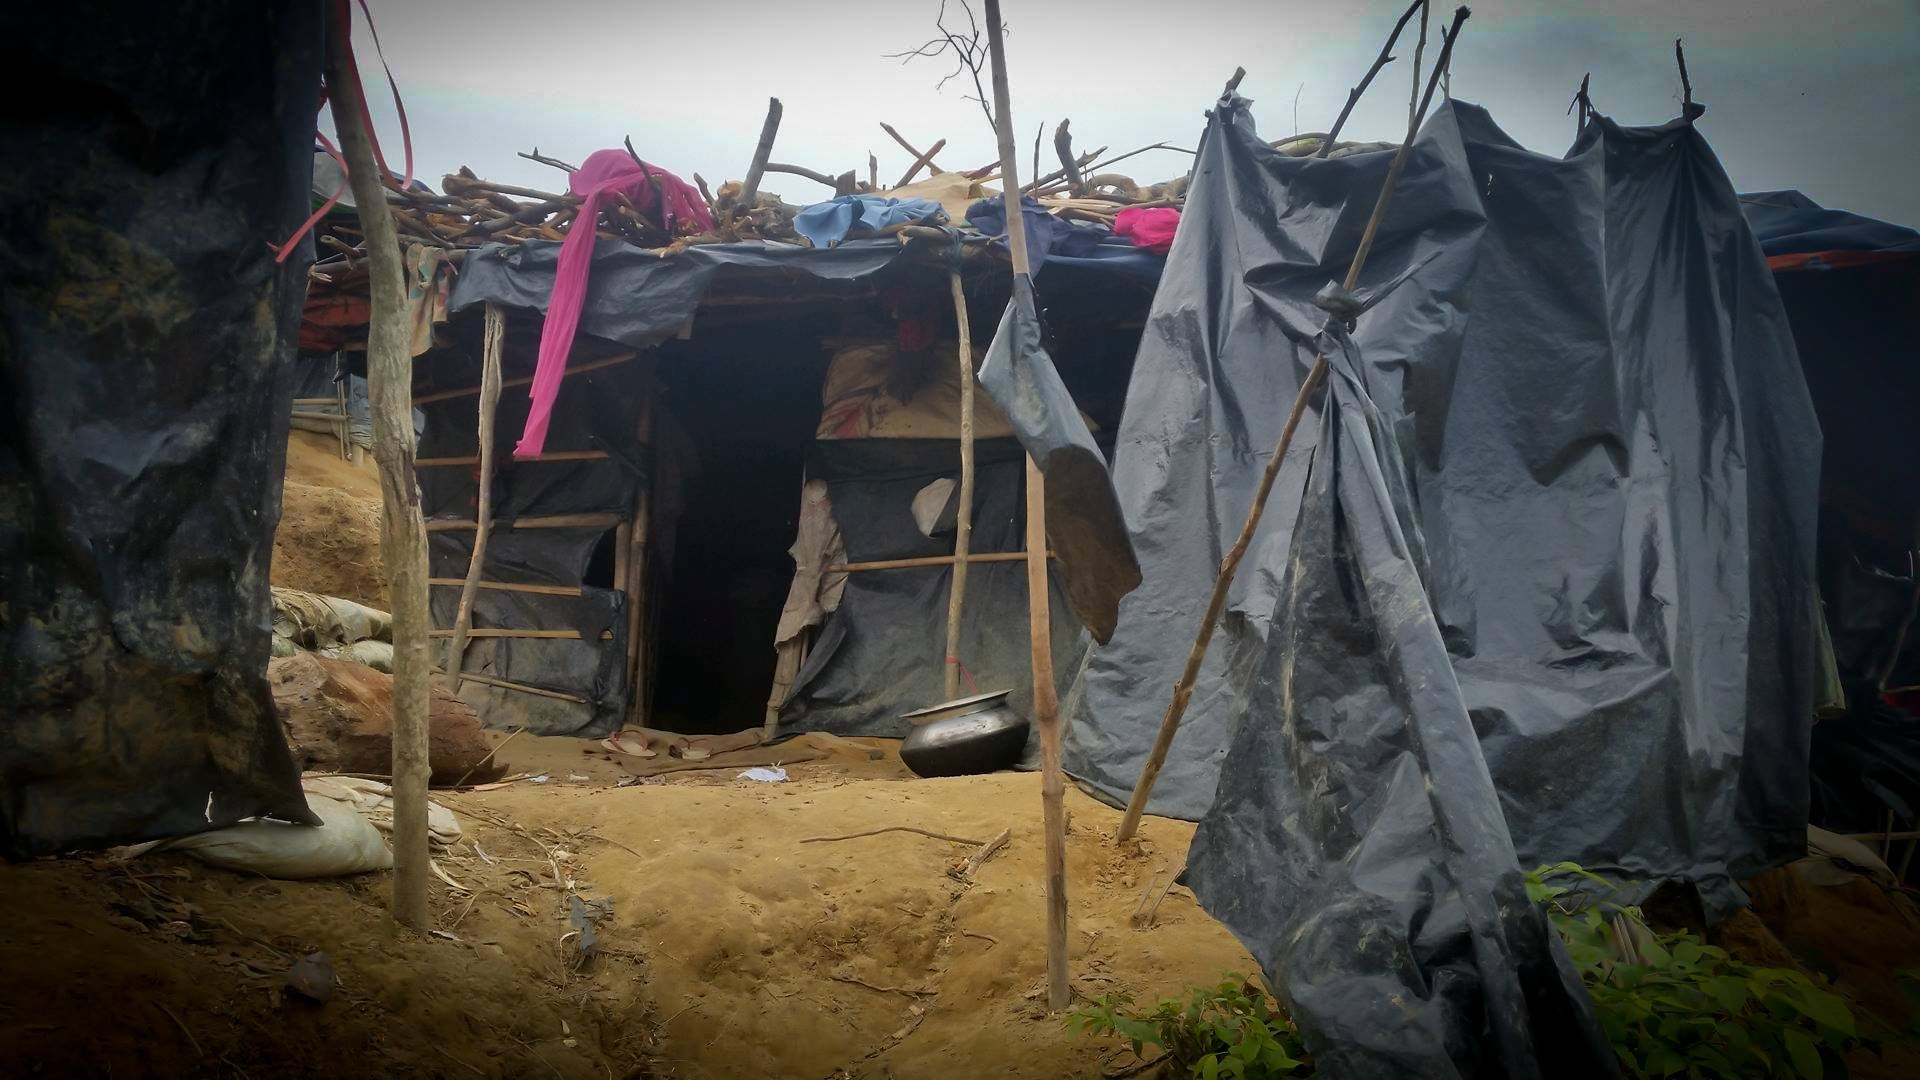 surviving in a refugee camp by Raisasabila